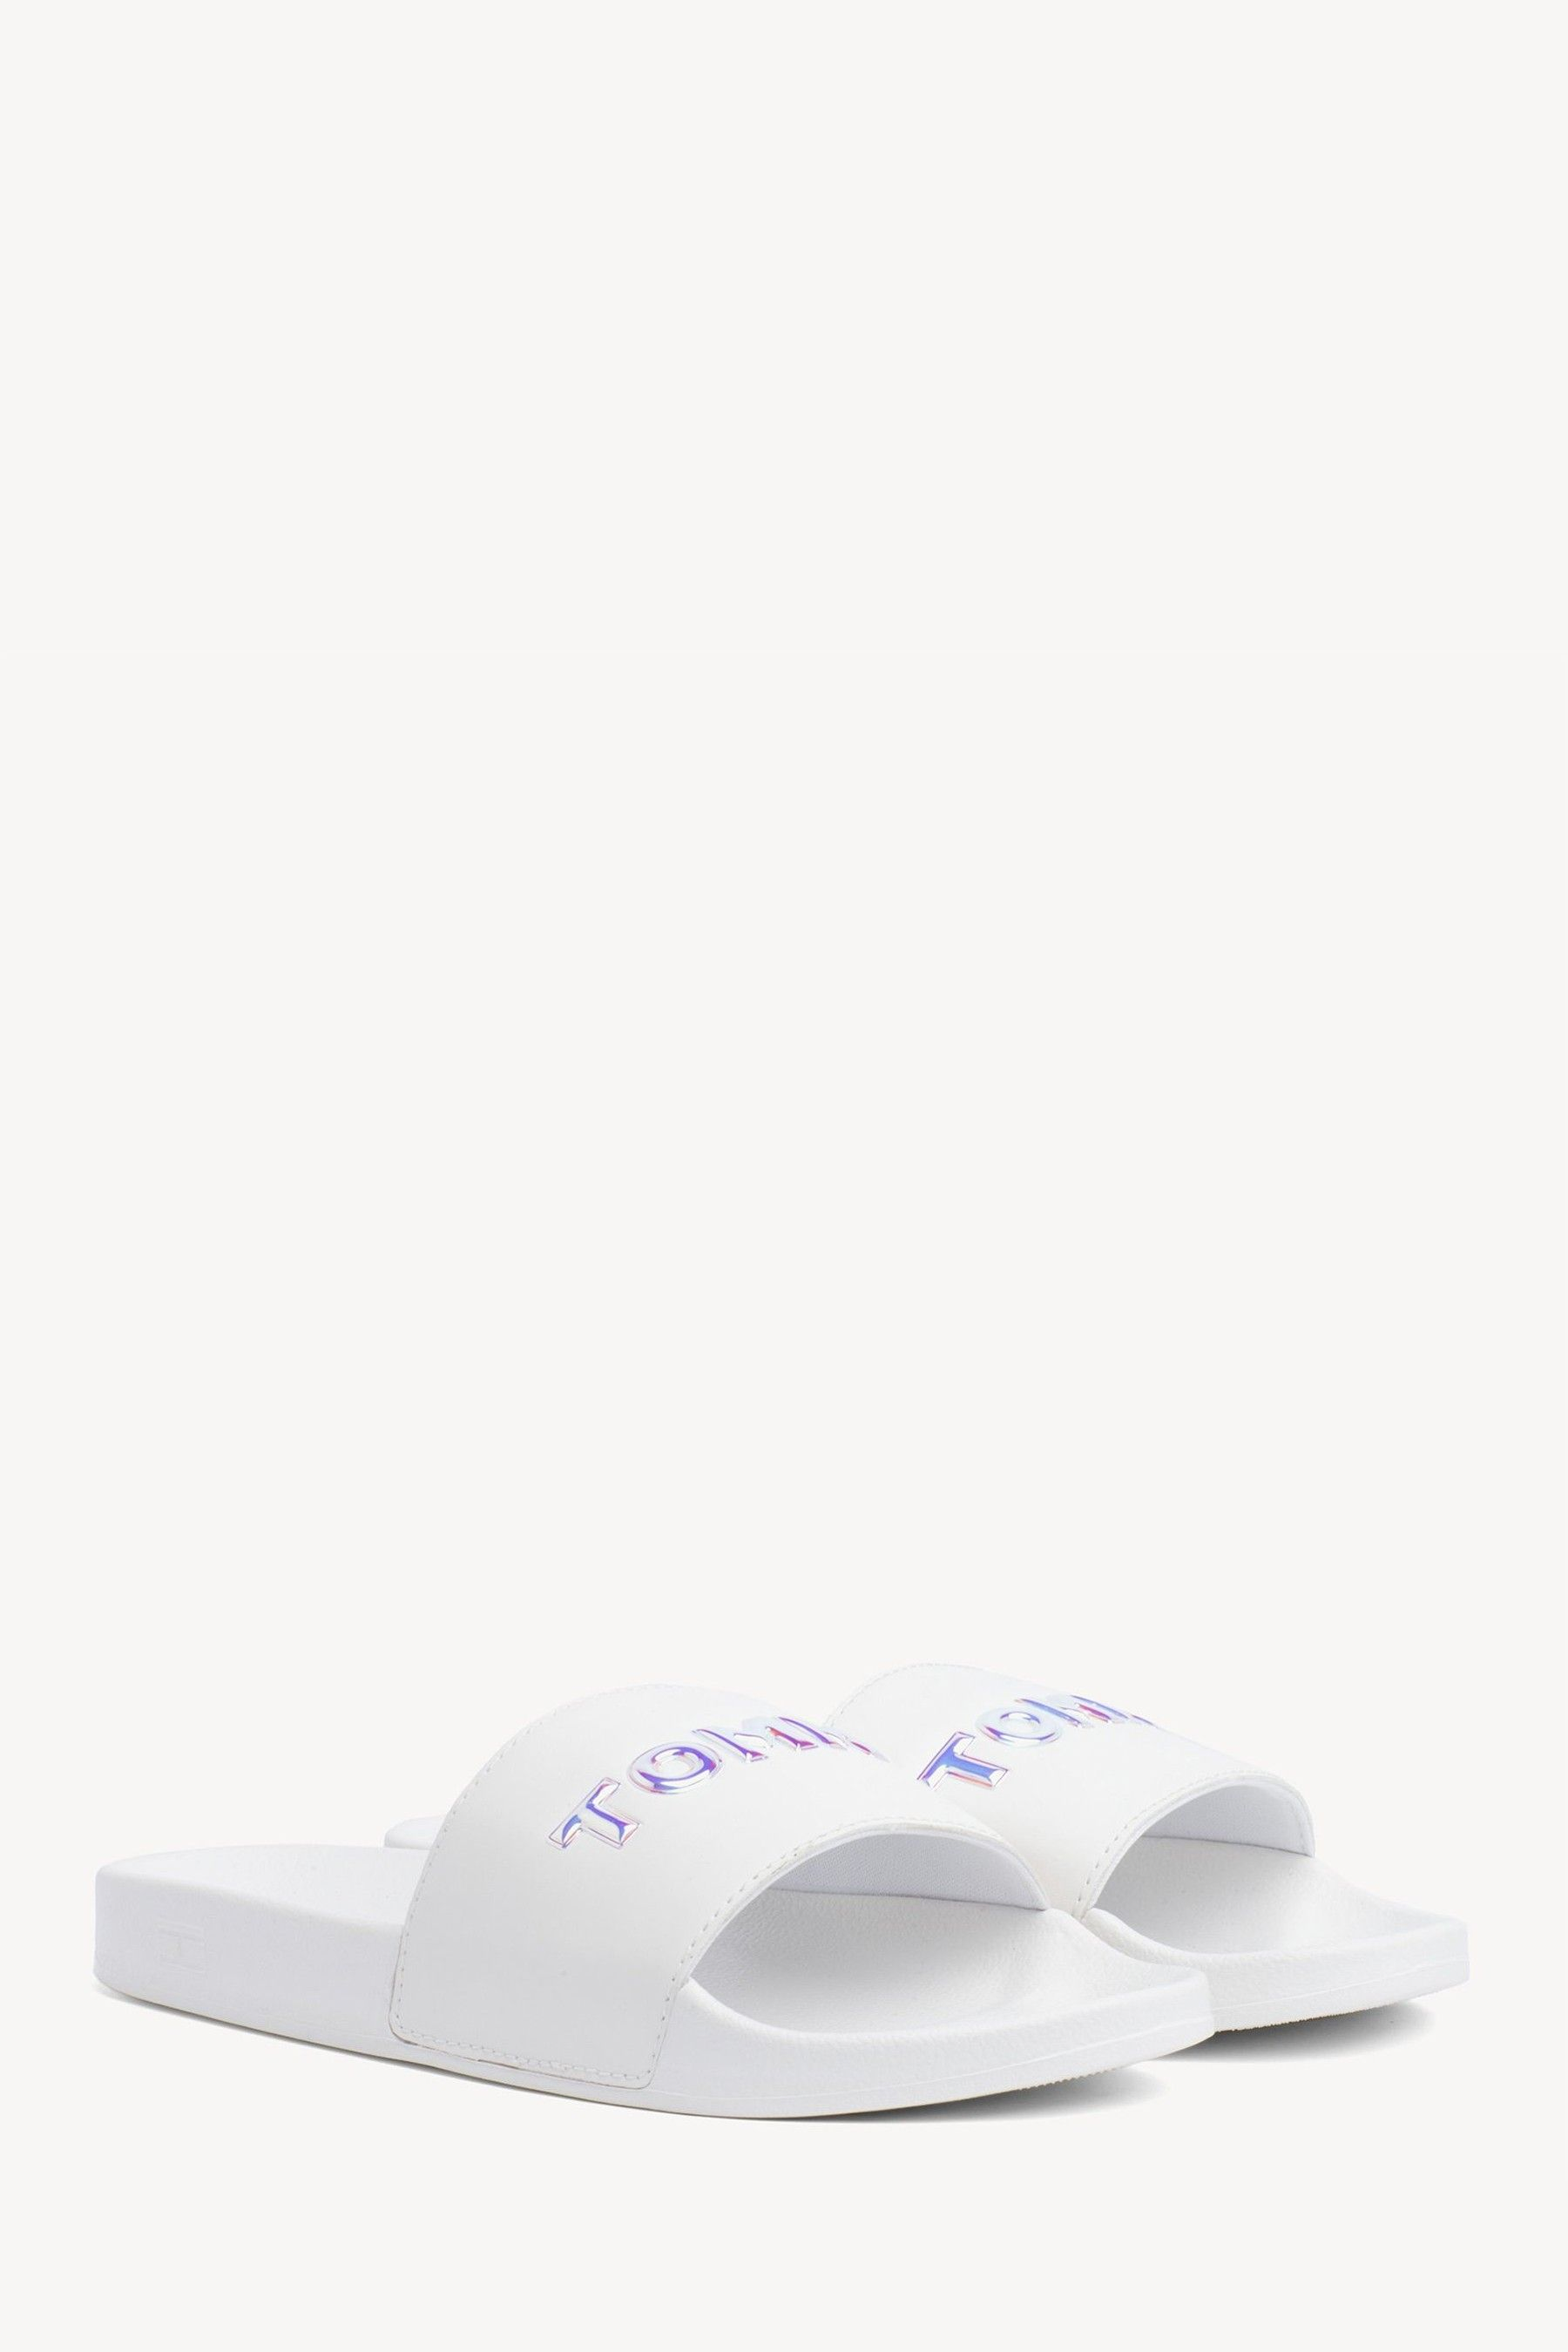 Womens Tommy Hilfiger Iridescent Pool